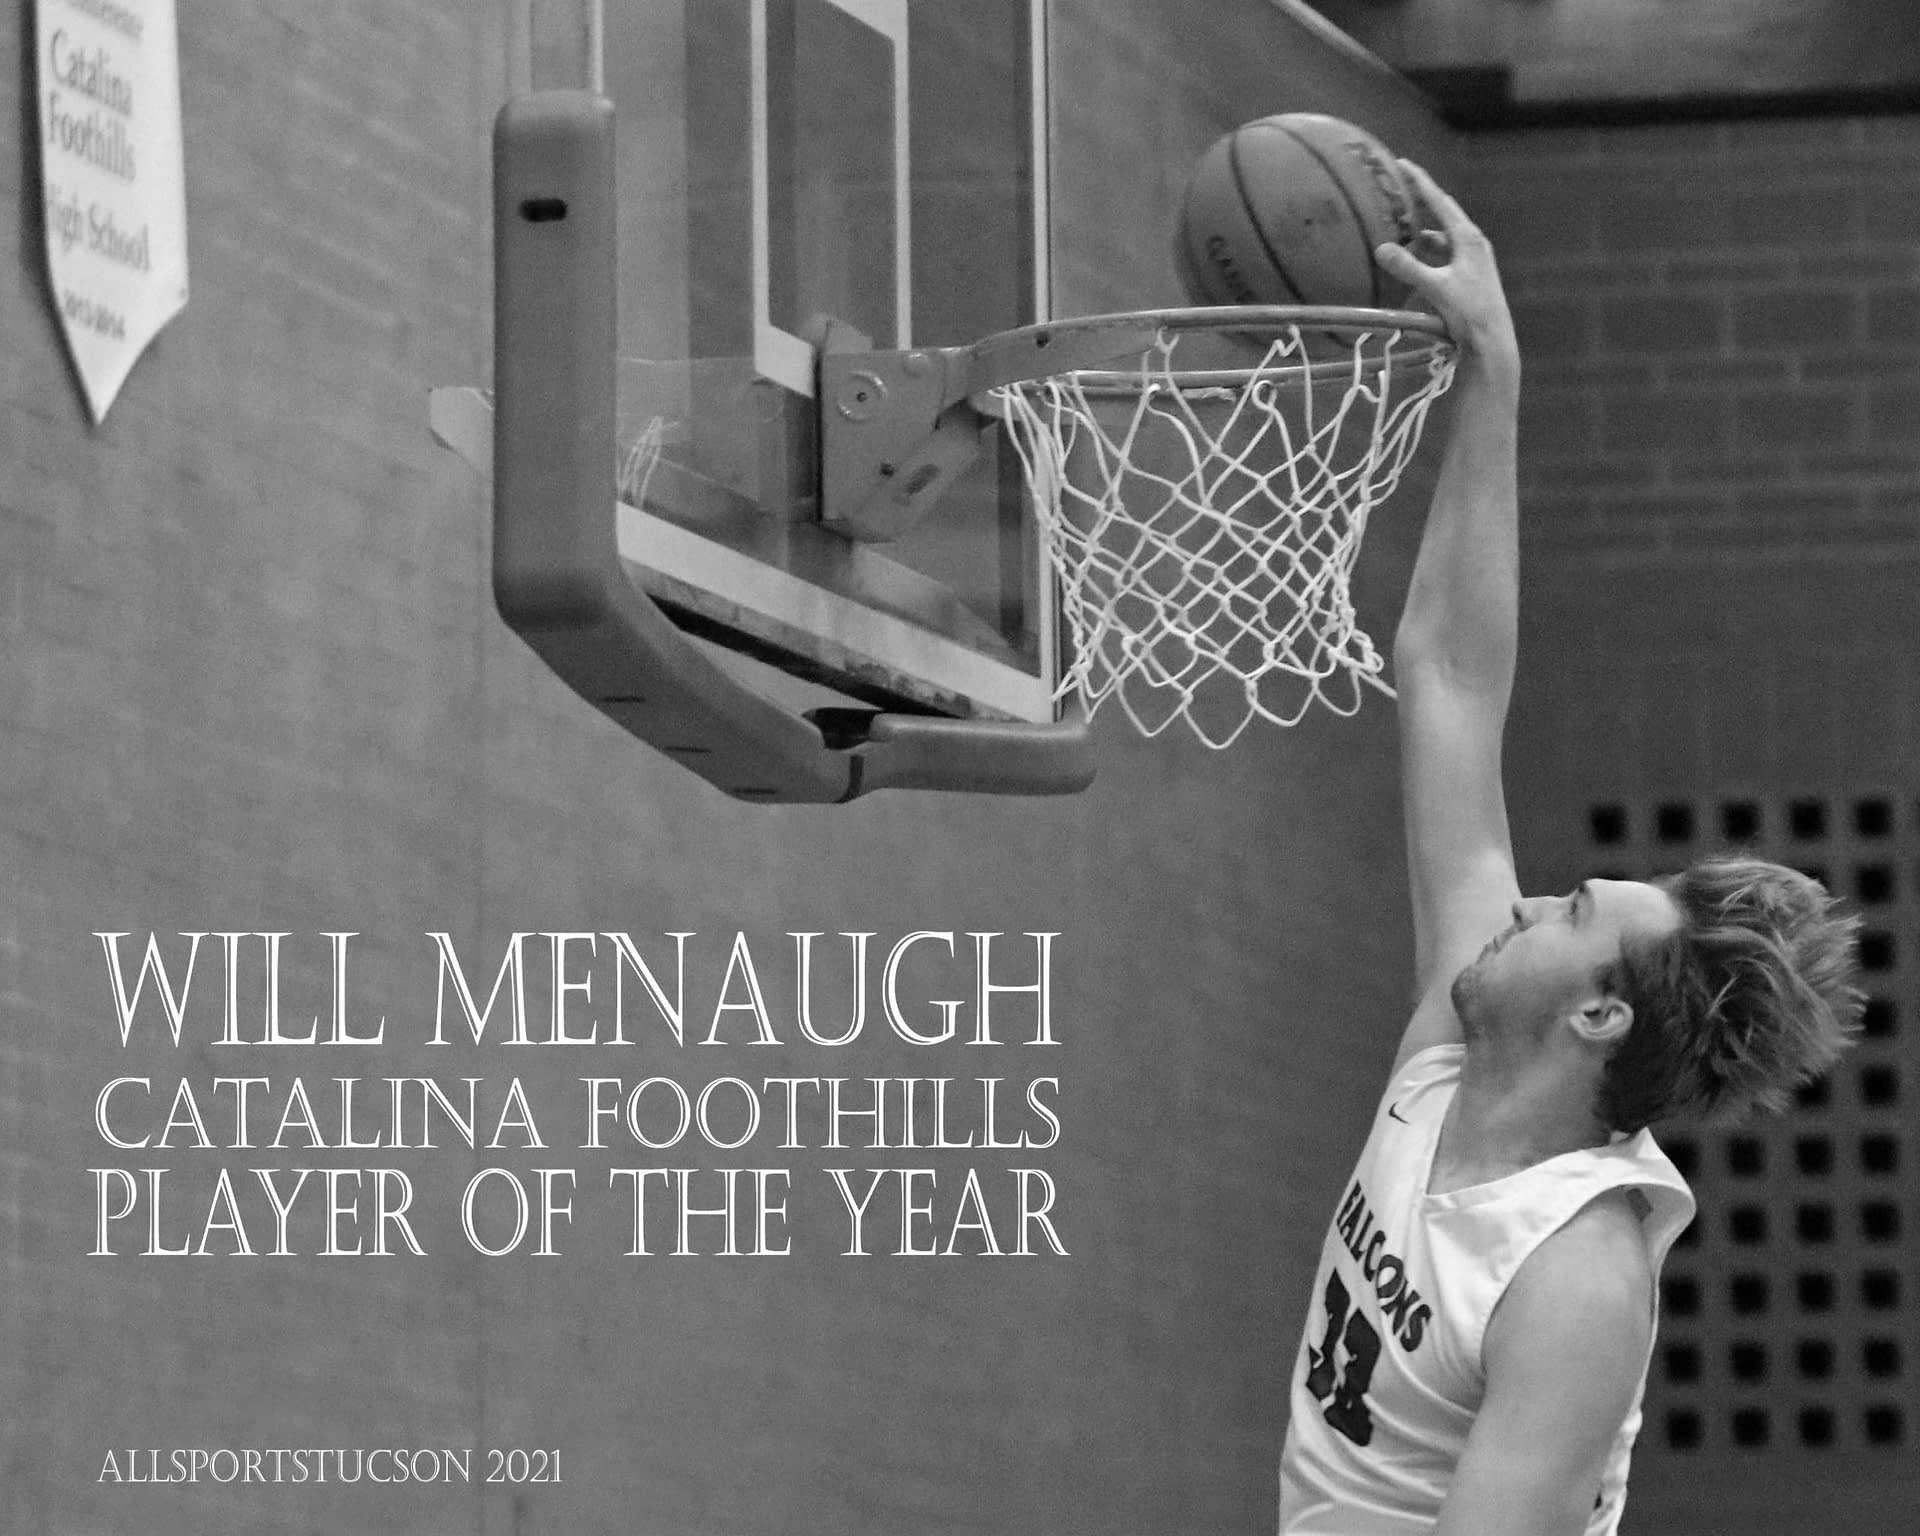 IMG_3800-will-menaugh-dunk-POY